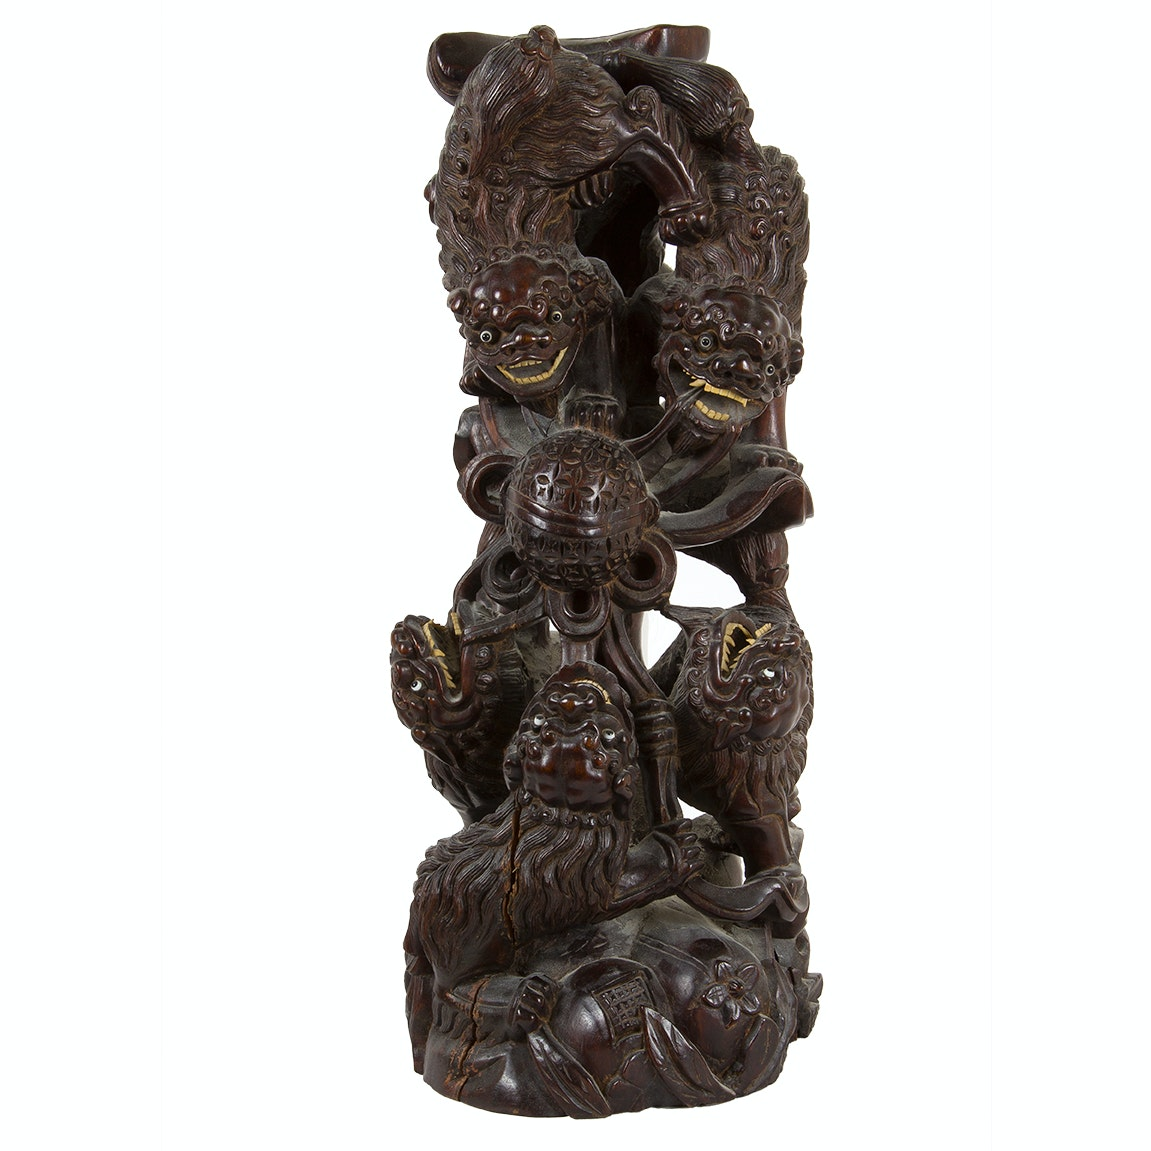 Chinese Guardian Lions Rosewood Sculpture